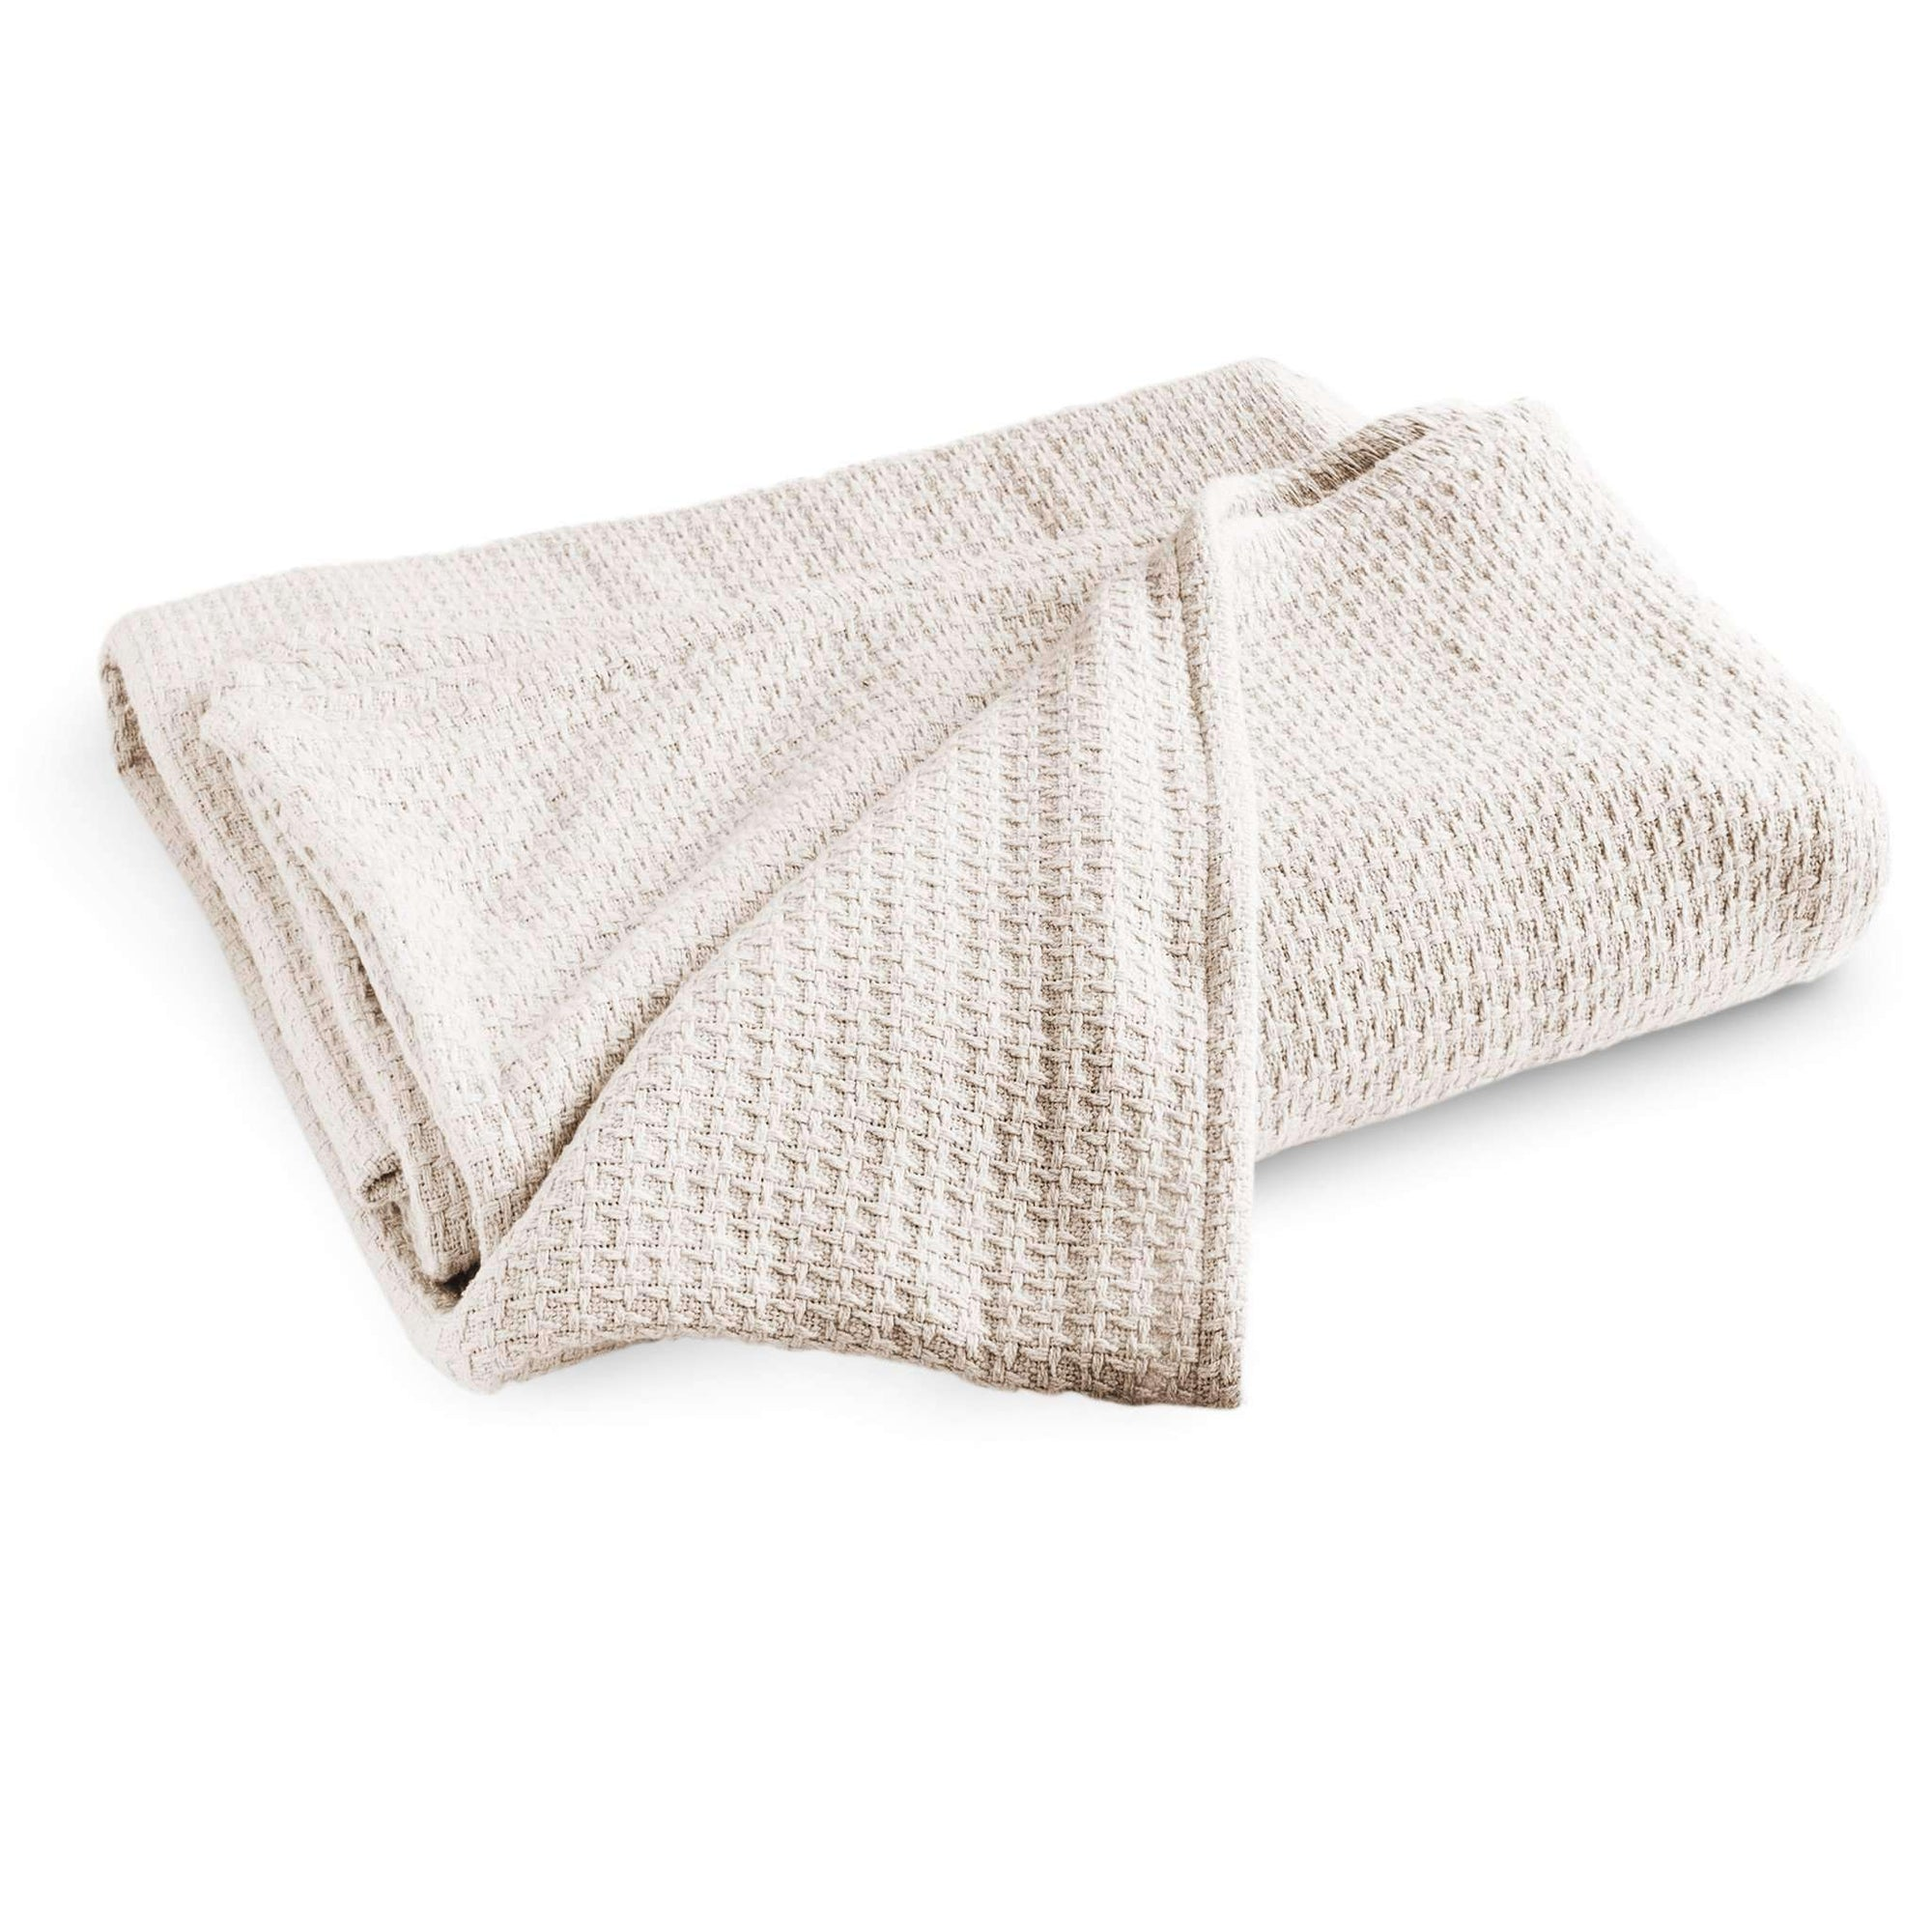 Le Meurice Luxury Blanket